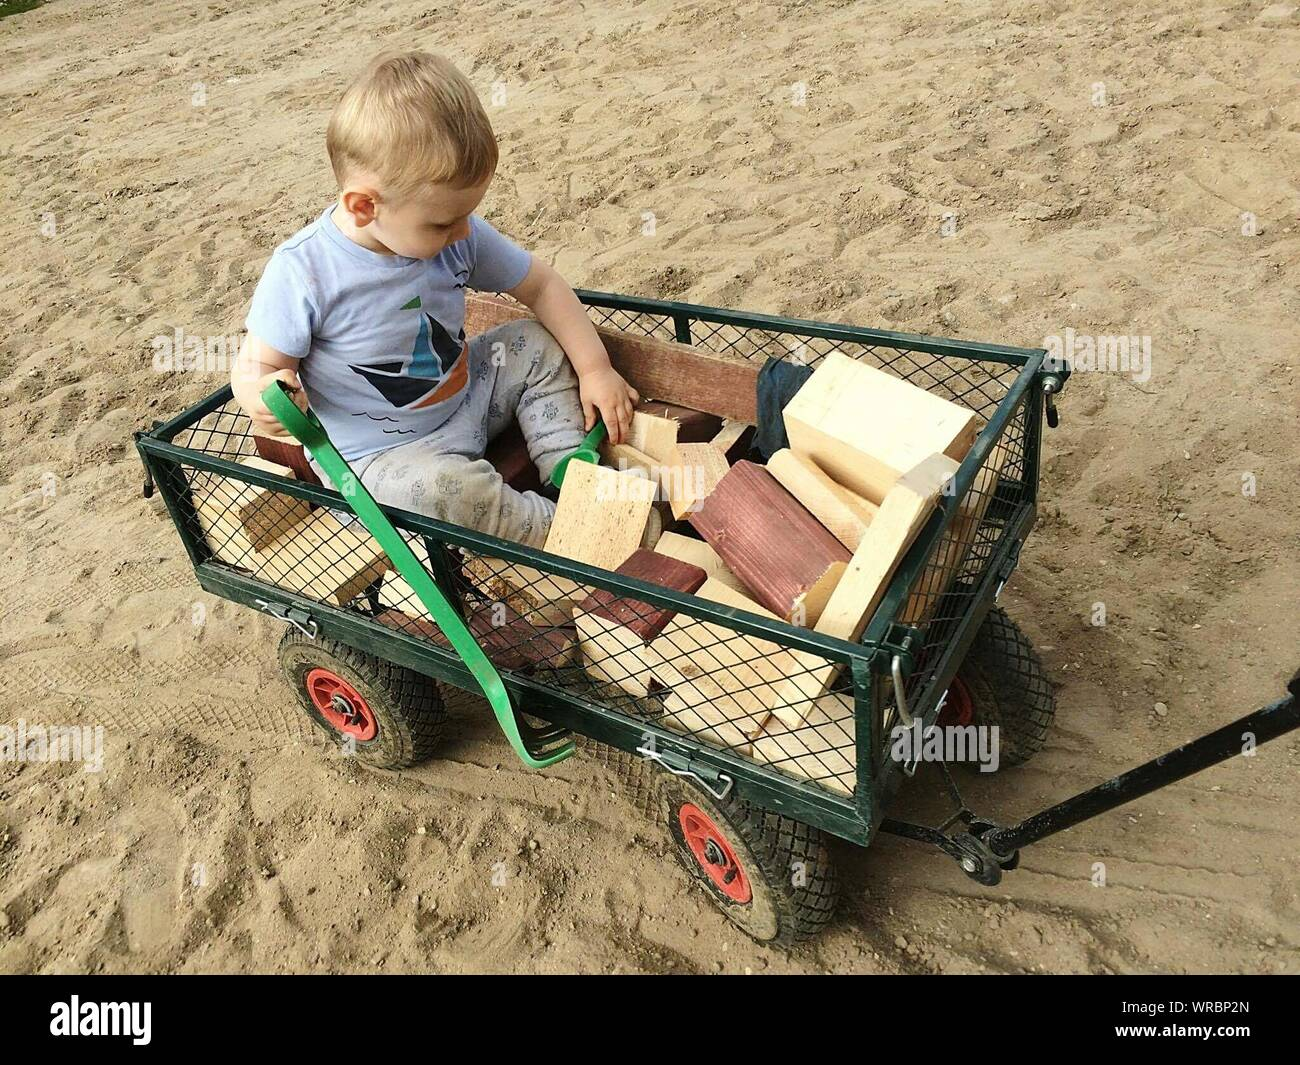 High Angle View Of Boy With Toys Sitting In Vehicle Trailer At Beach - Stock Photo